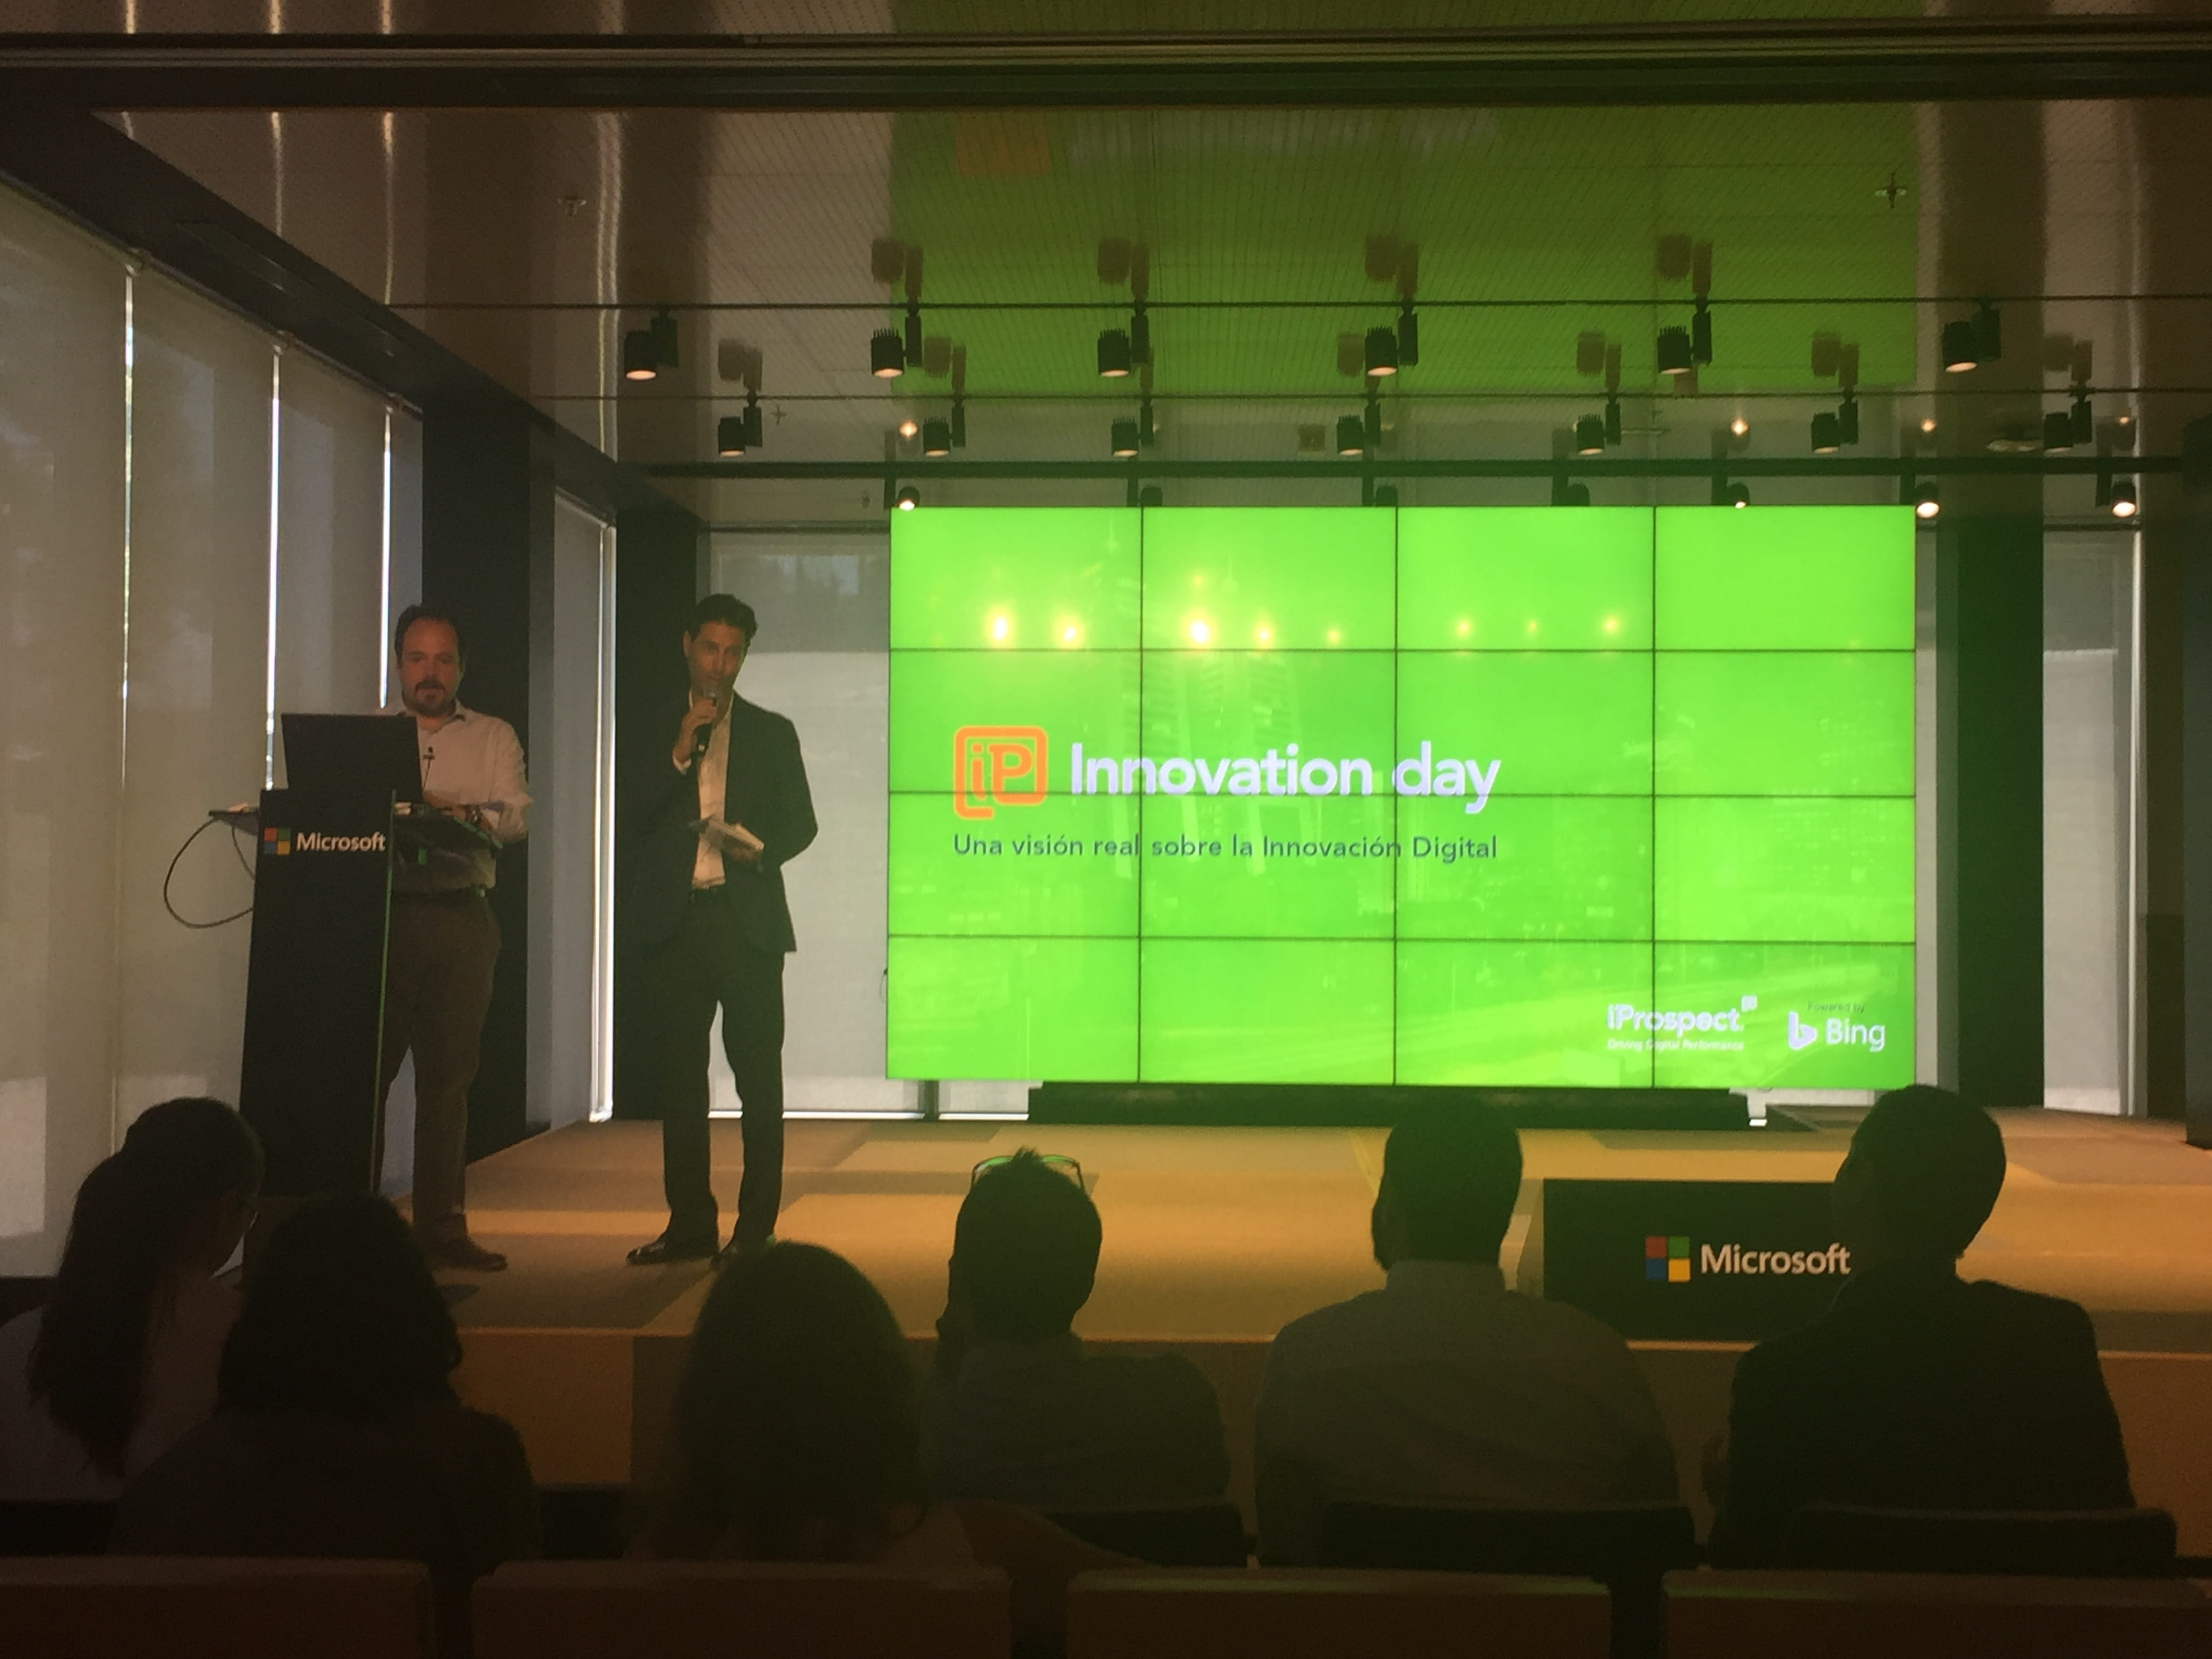 Innovation day ip